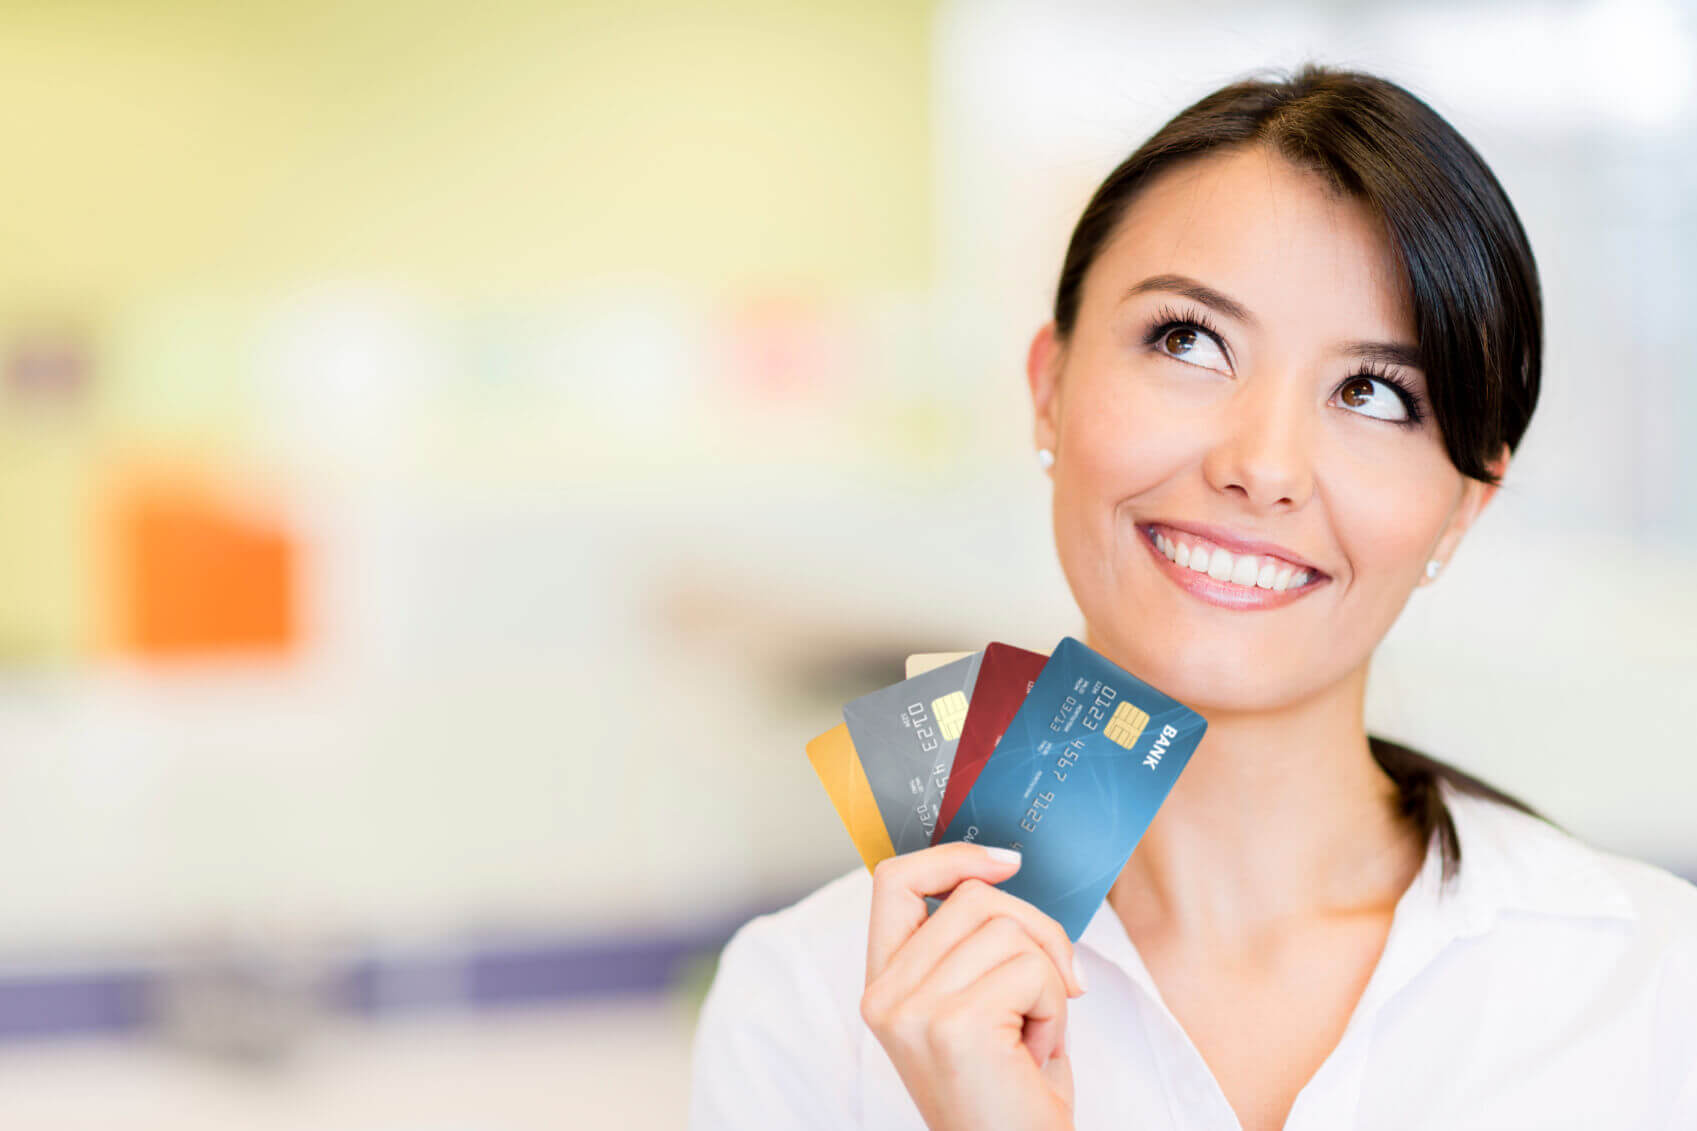 How often do you think to redeem credit card rewards?